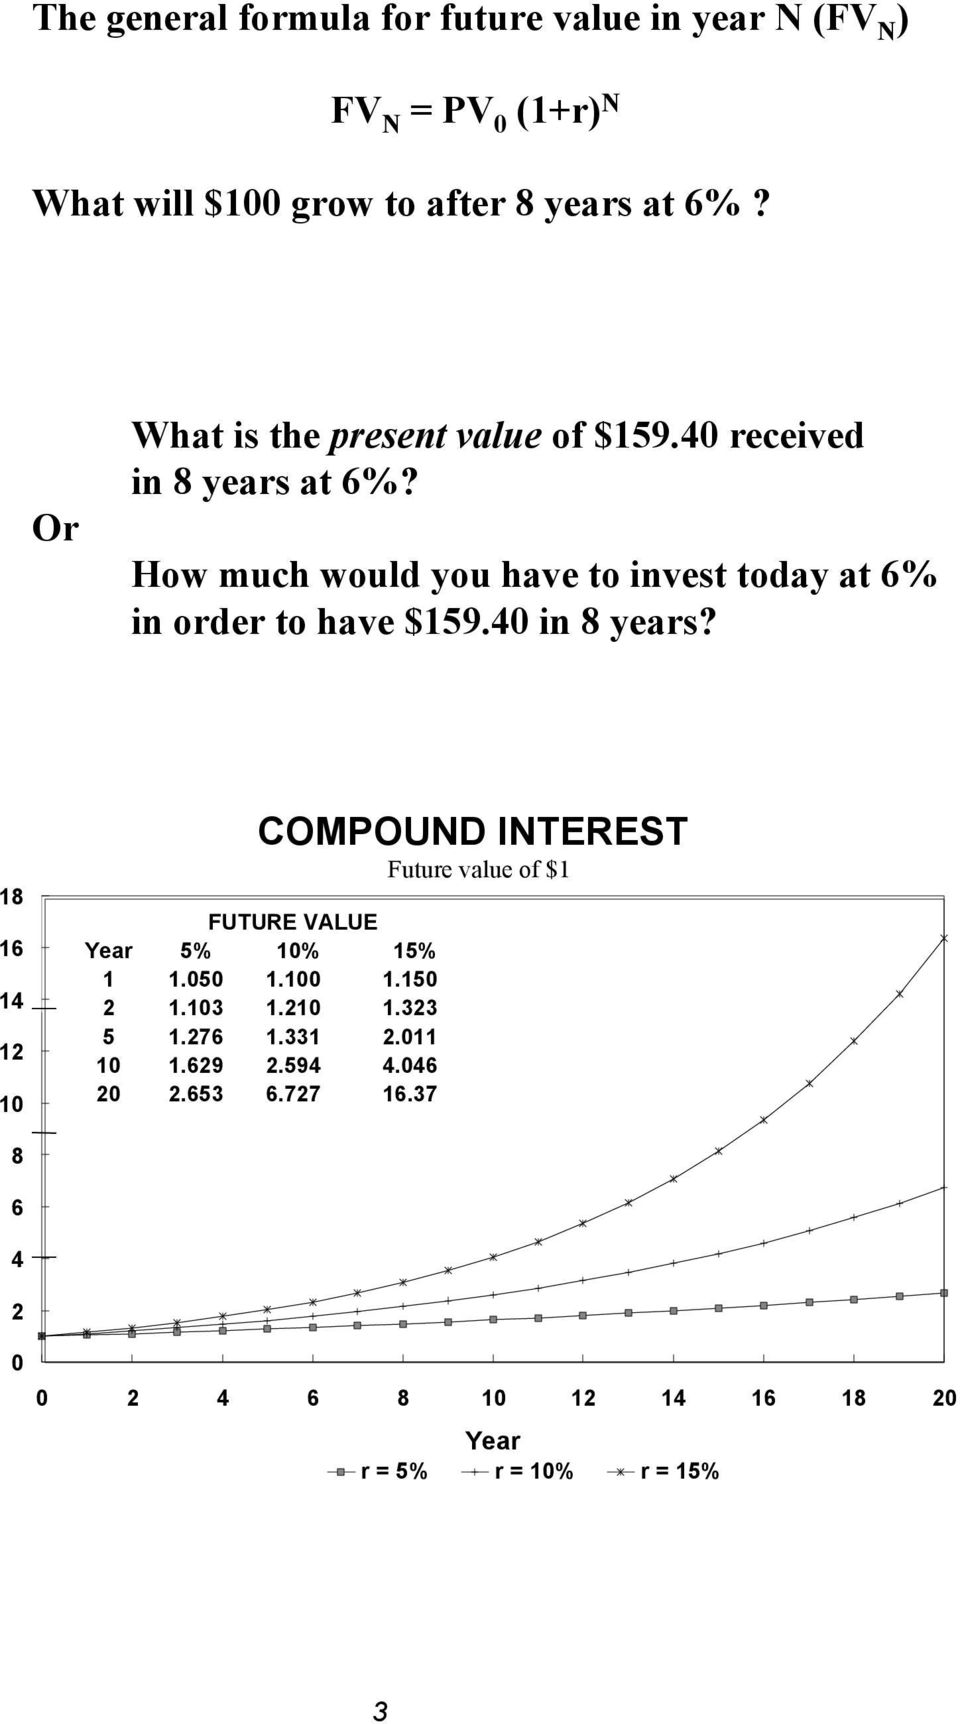 How much would you have to invest today at 6% in order to have $159.40 in 8 years? 18 16 14 12 10 8 6 4 2 Year 1 2 5 10 20 5% 1.